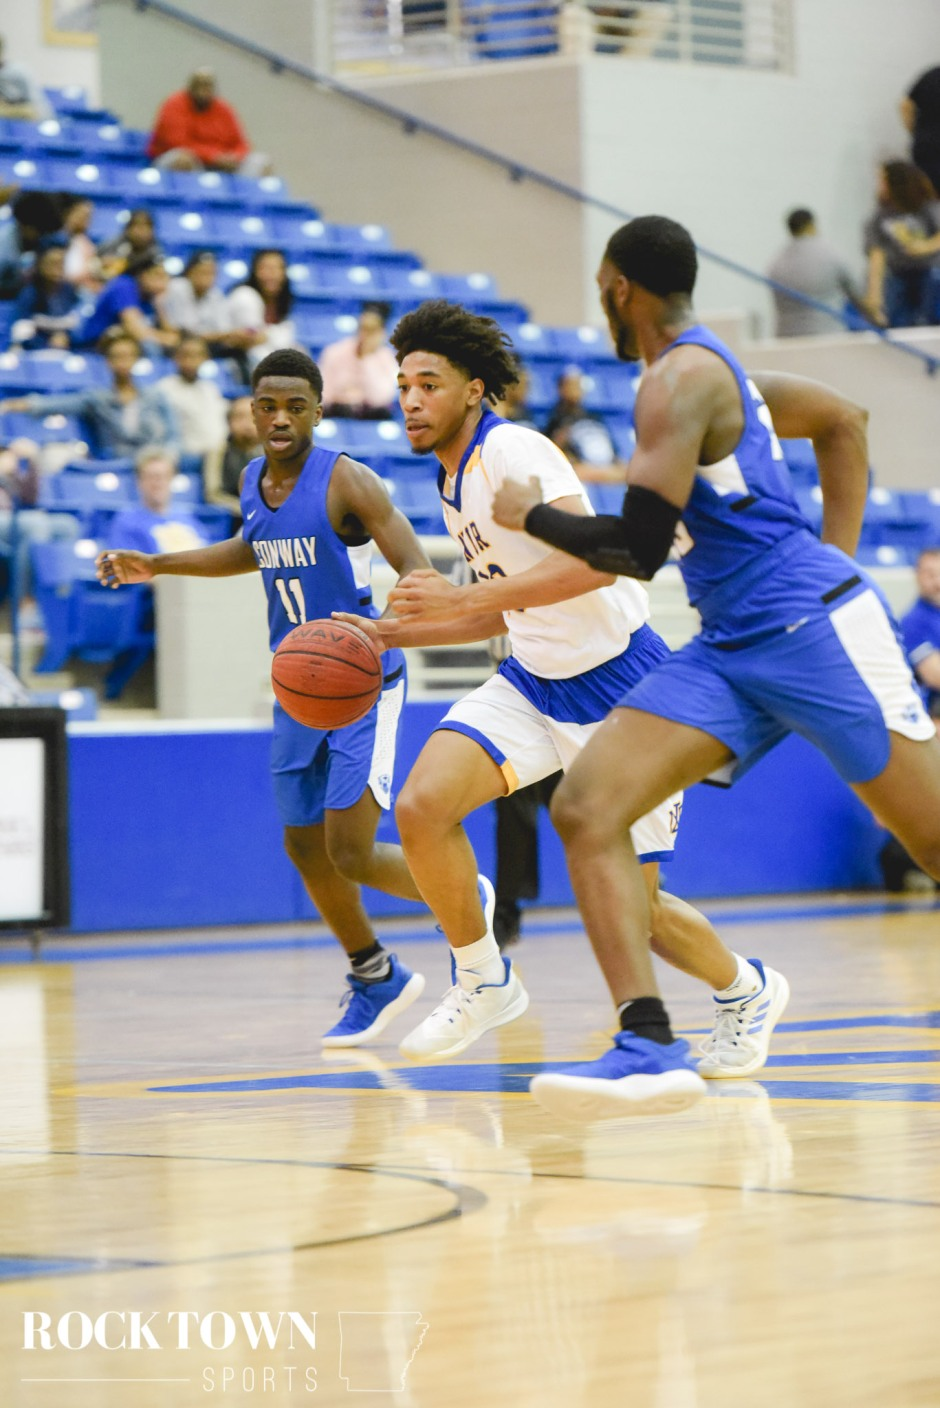 Conway_NLR_bball19(i)-62